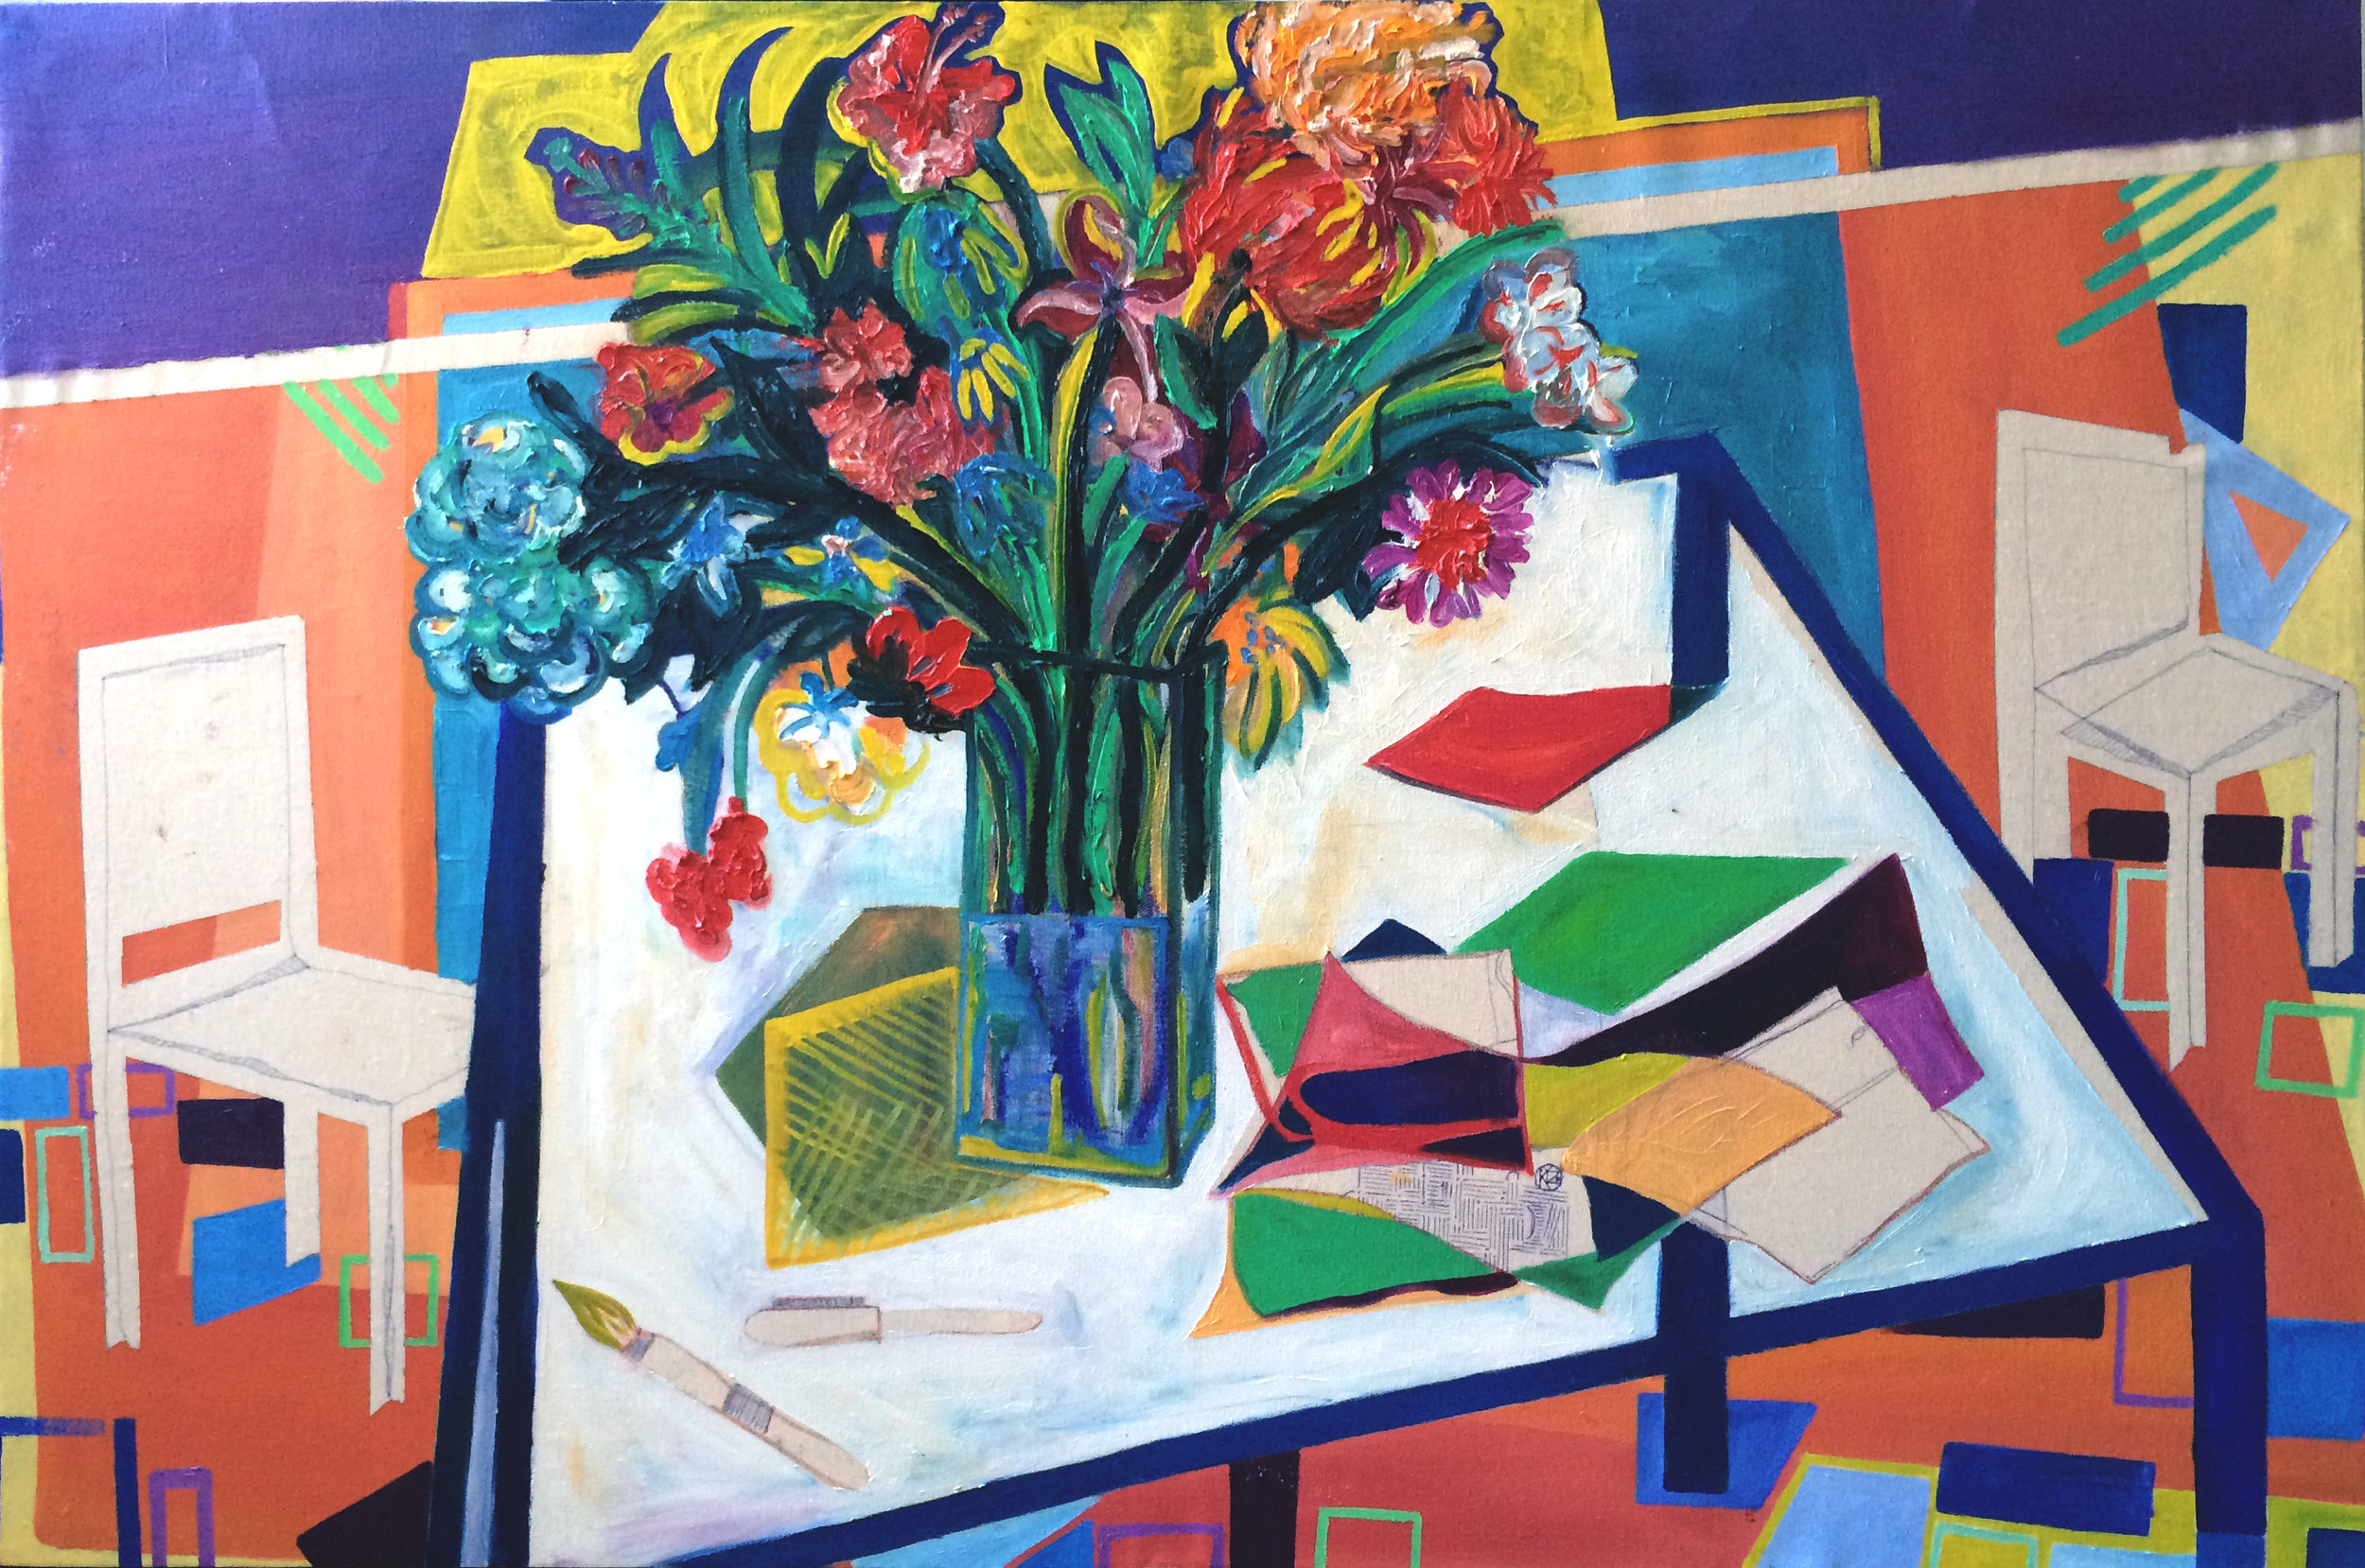 Flowers and the Table   Acrylic, oil on canvas, 125x87 cm / 34.2x49.2 inches